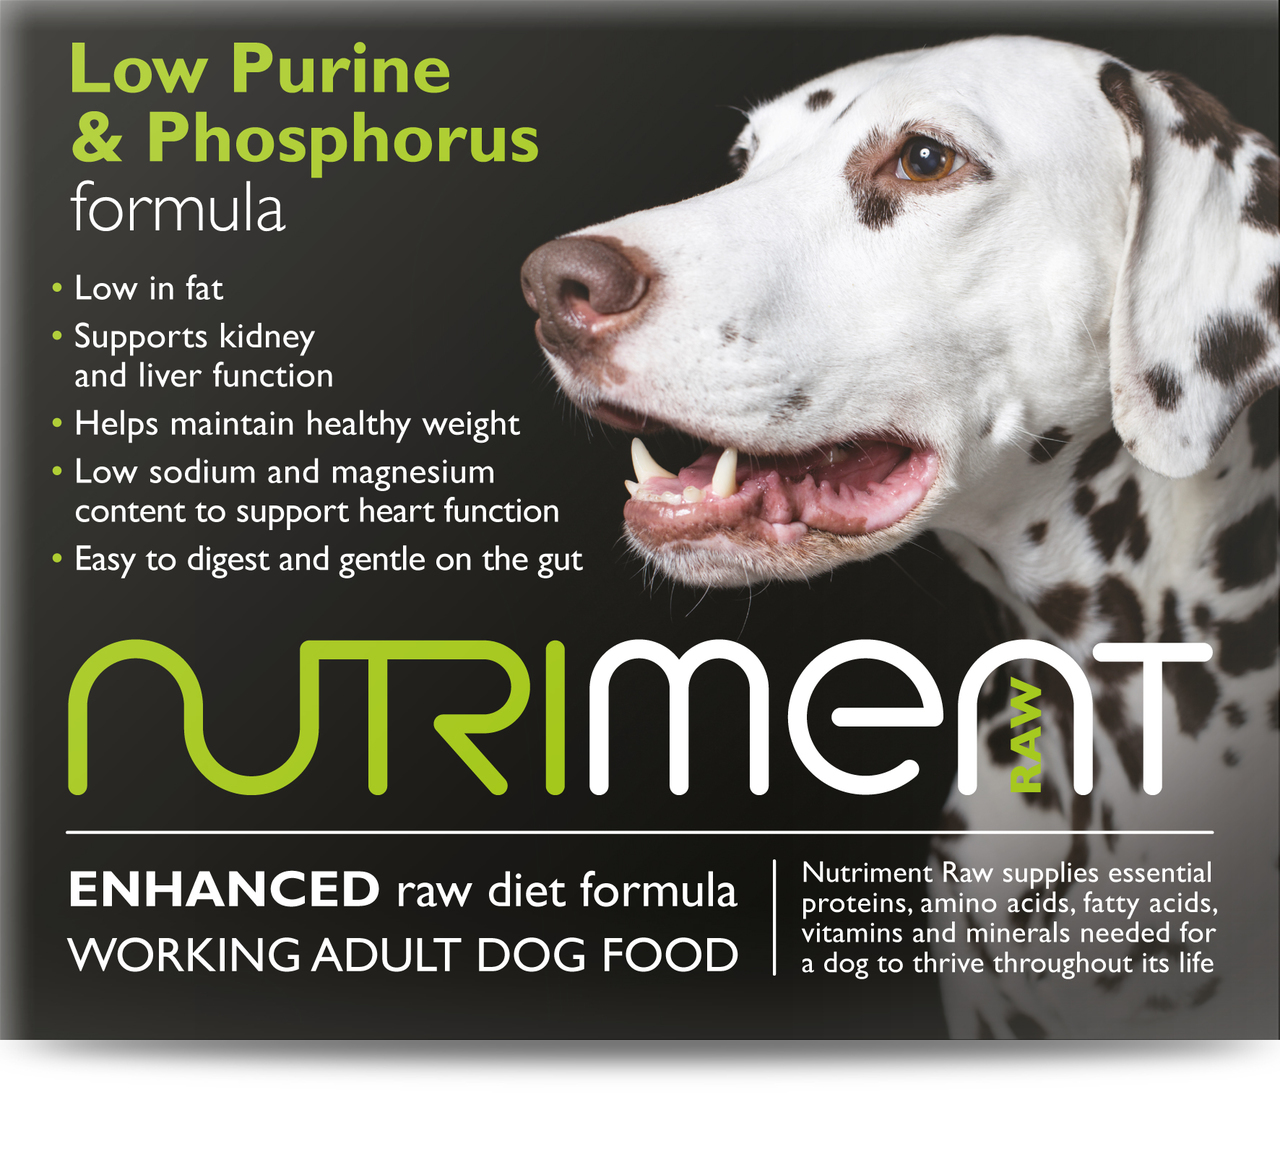 Permalink to Nutriment Raw Dog Food